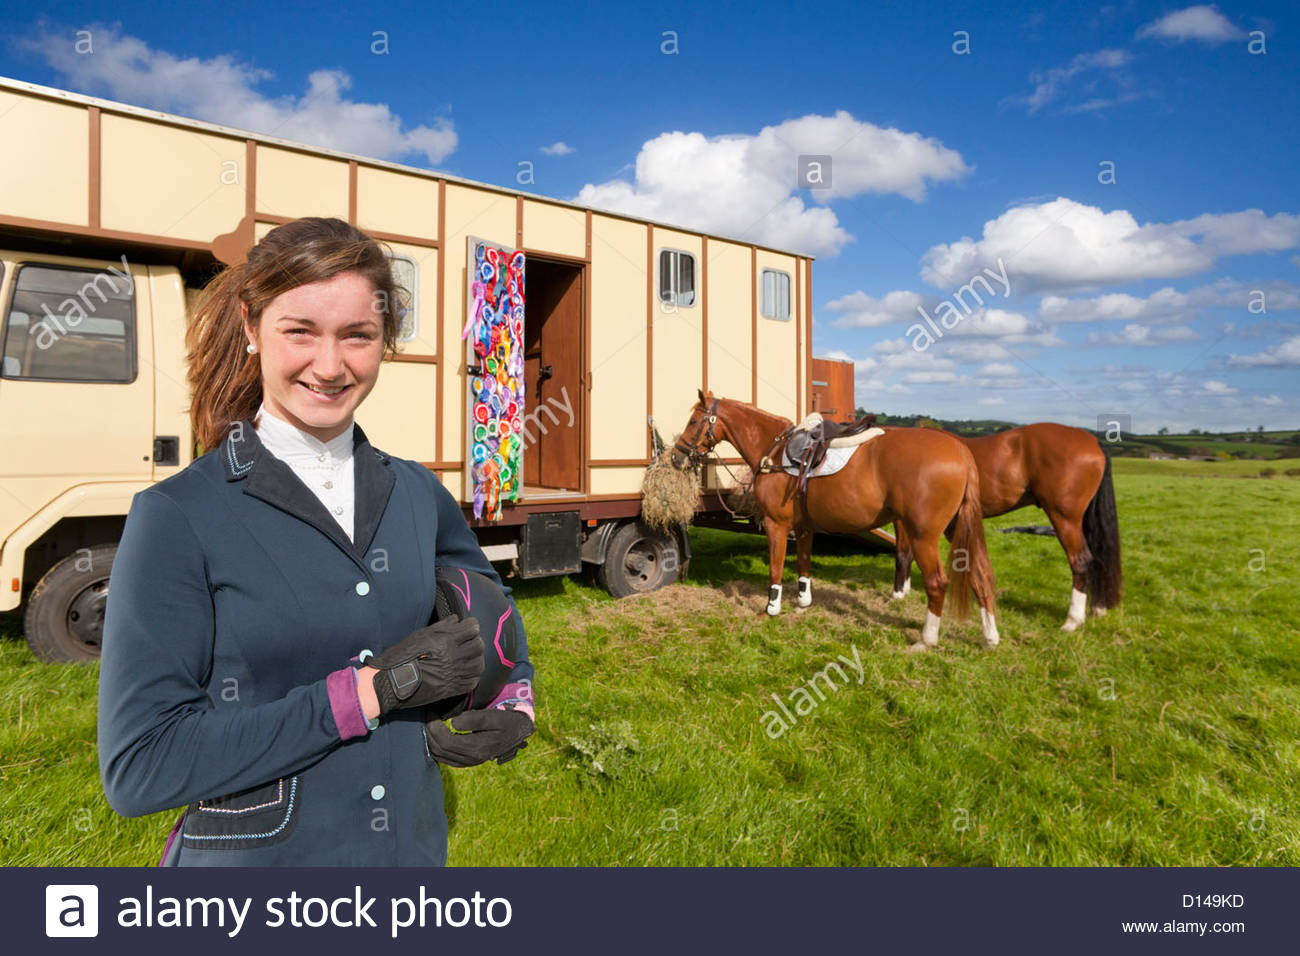 Portrait of smiling girl in equestrian uniform near horses and trailer in field - Stock Image